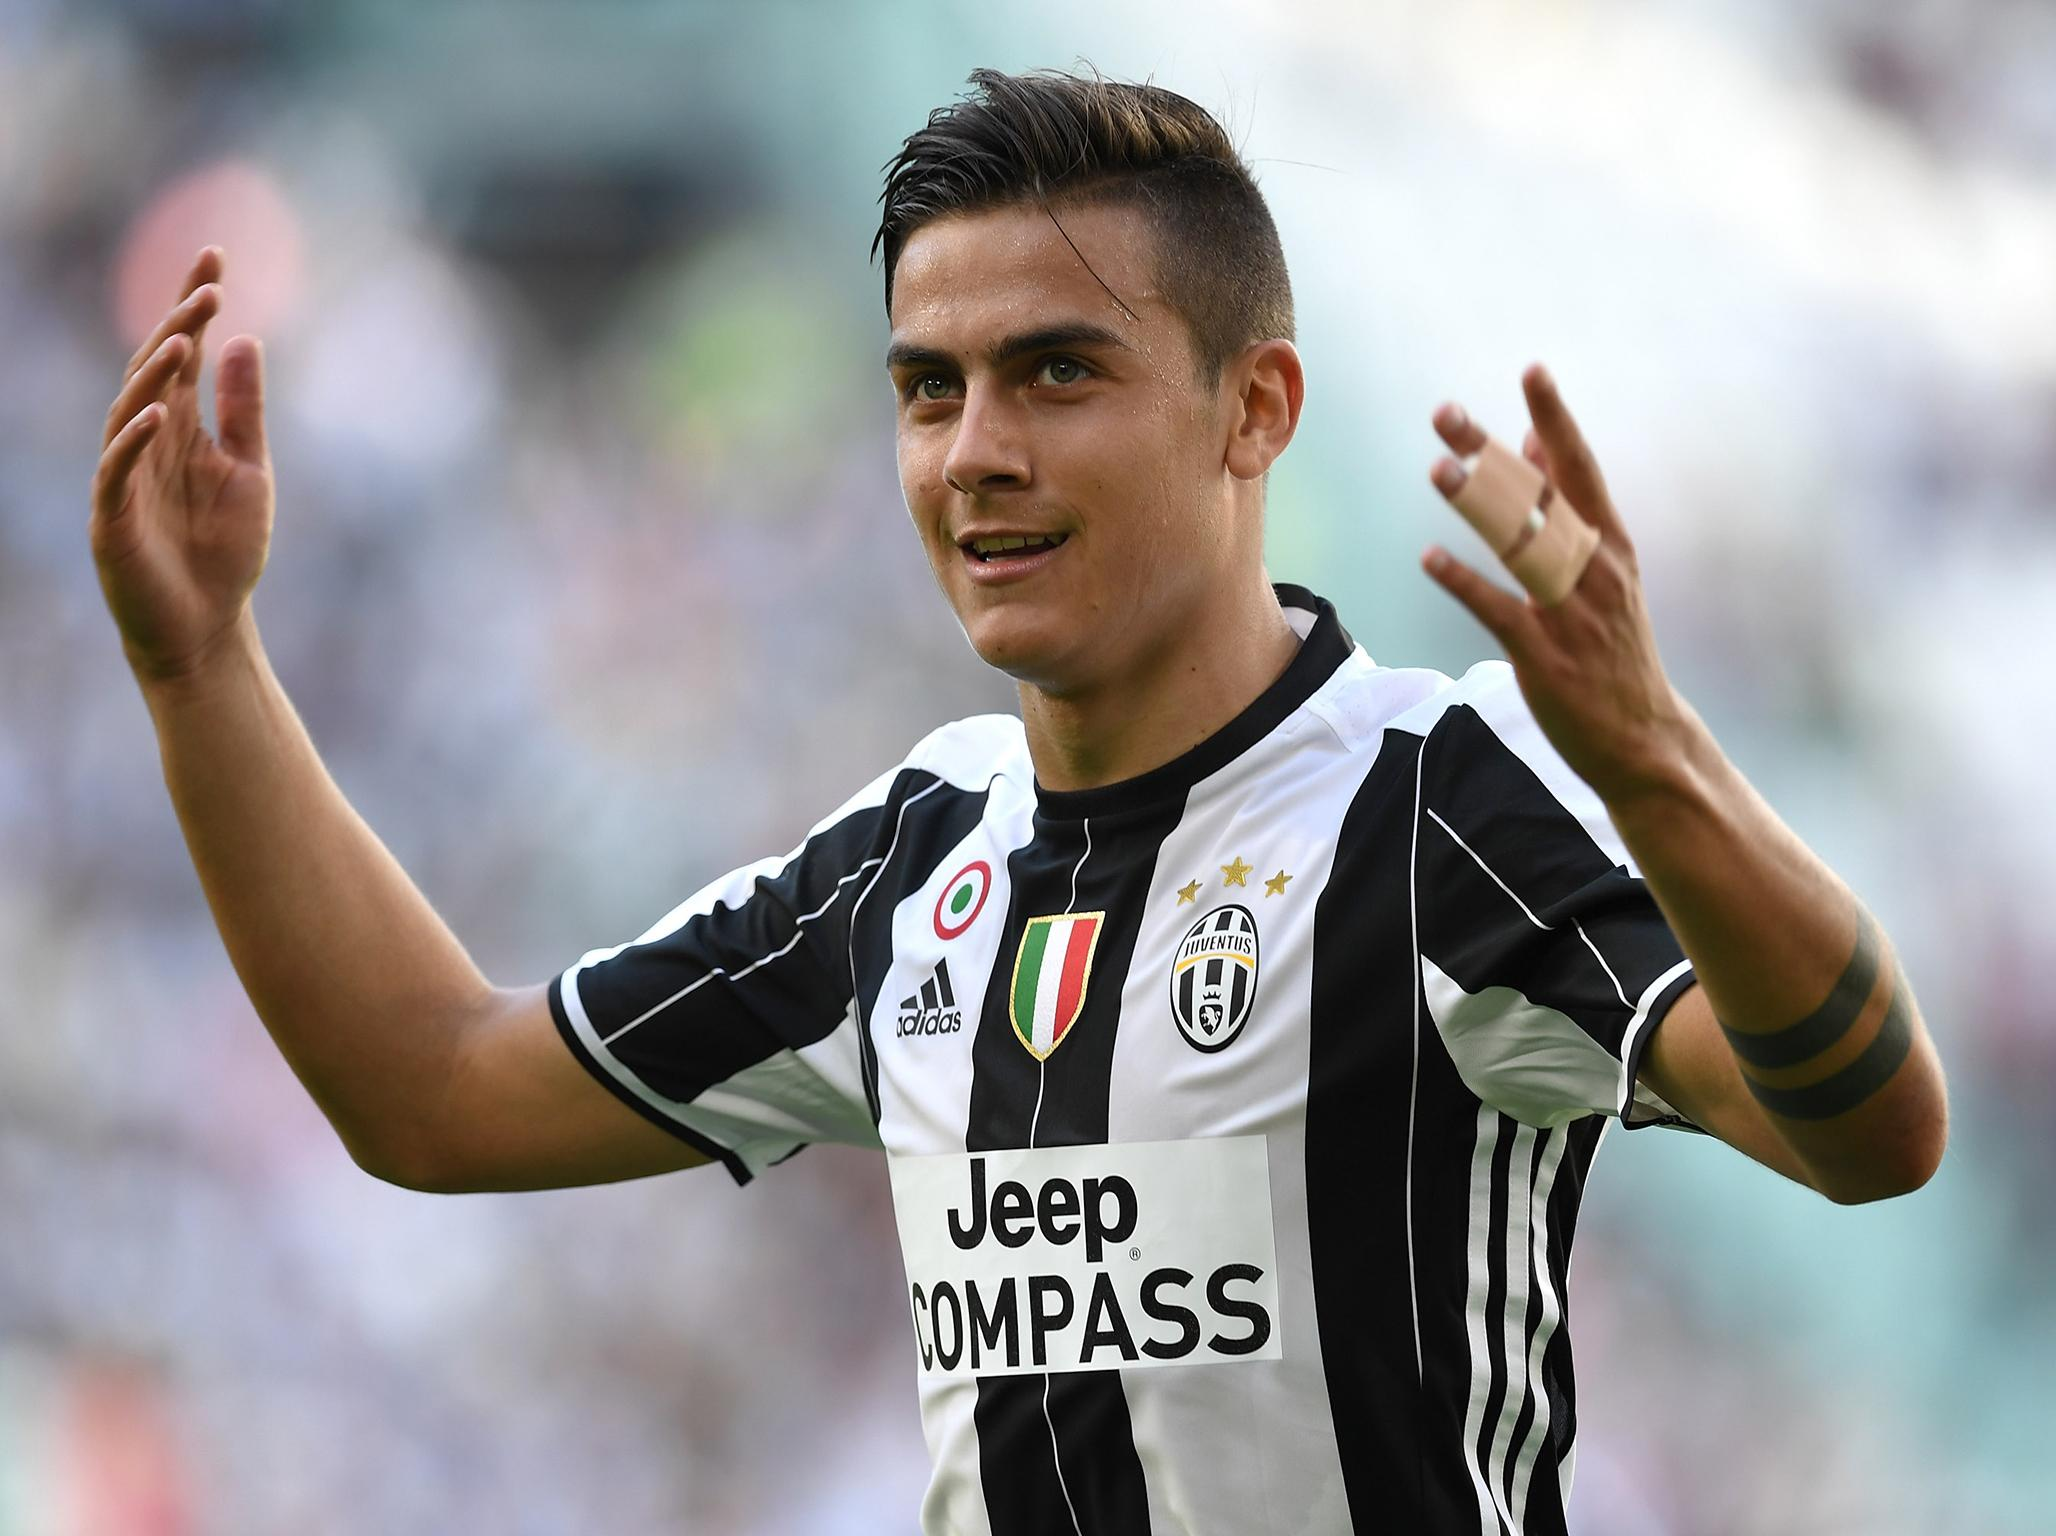 Transfer news live: Manchester United offer swap for Paulo Dybala, Arsenal want Riyad Mahrez, City eye defenders